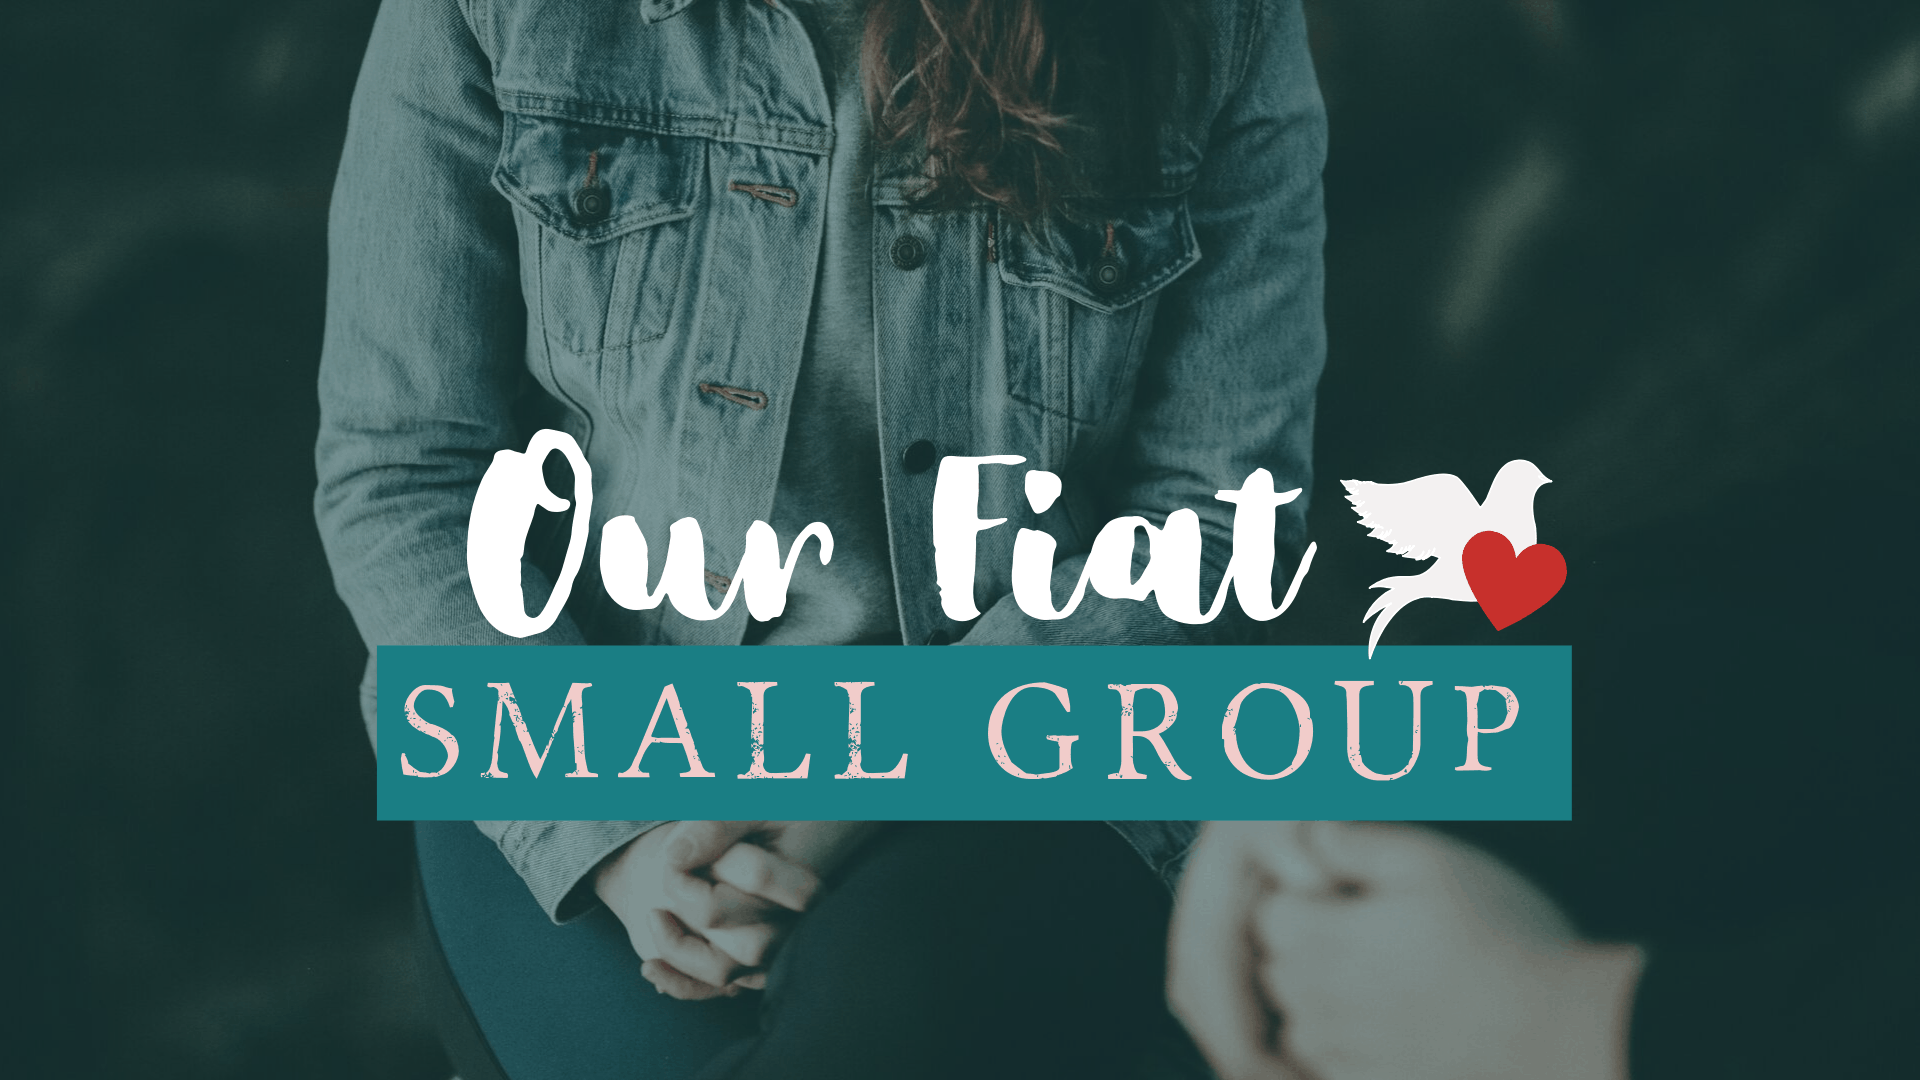 Small Group for Our Fiat Begins October 26th